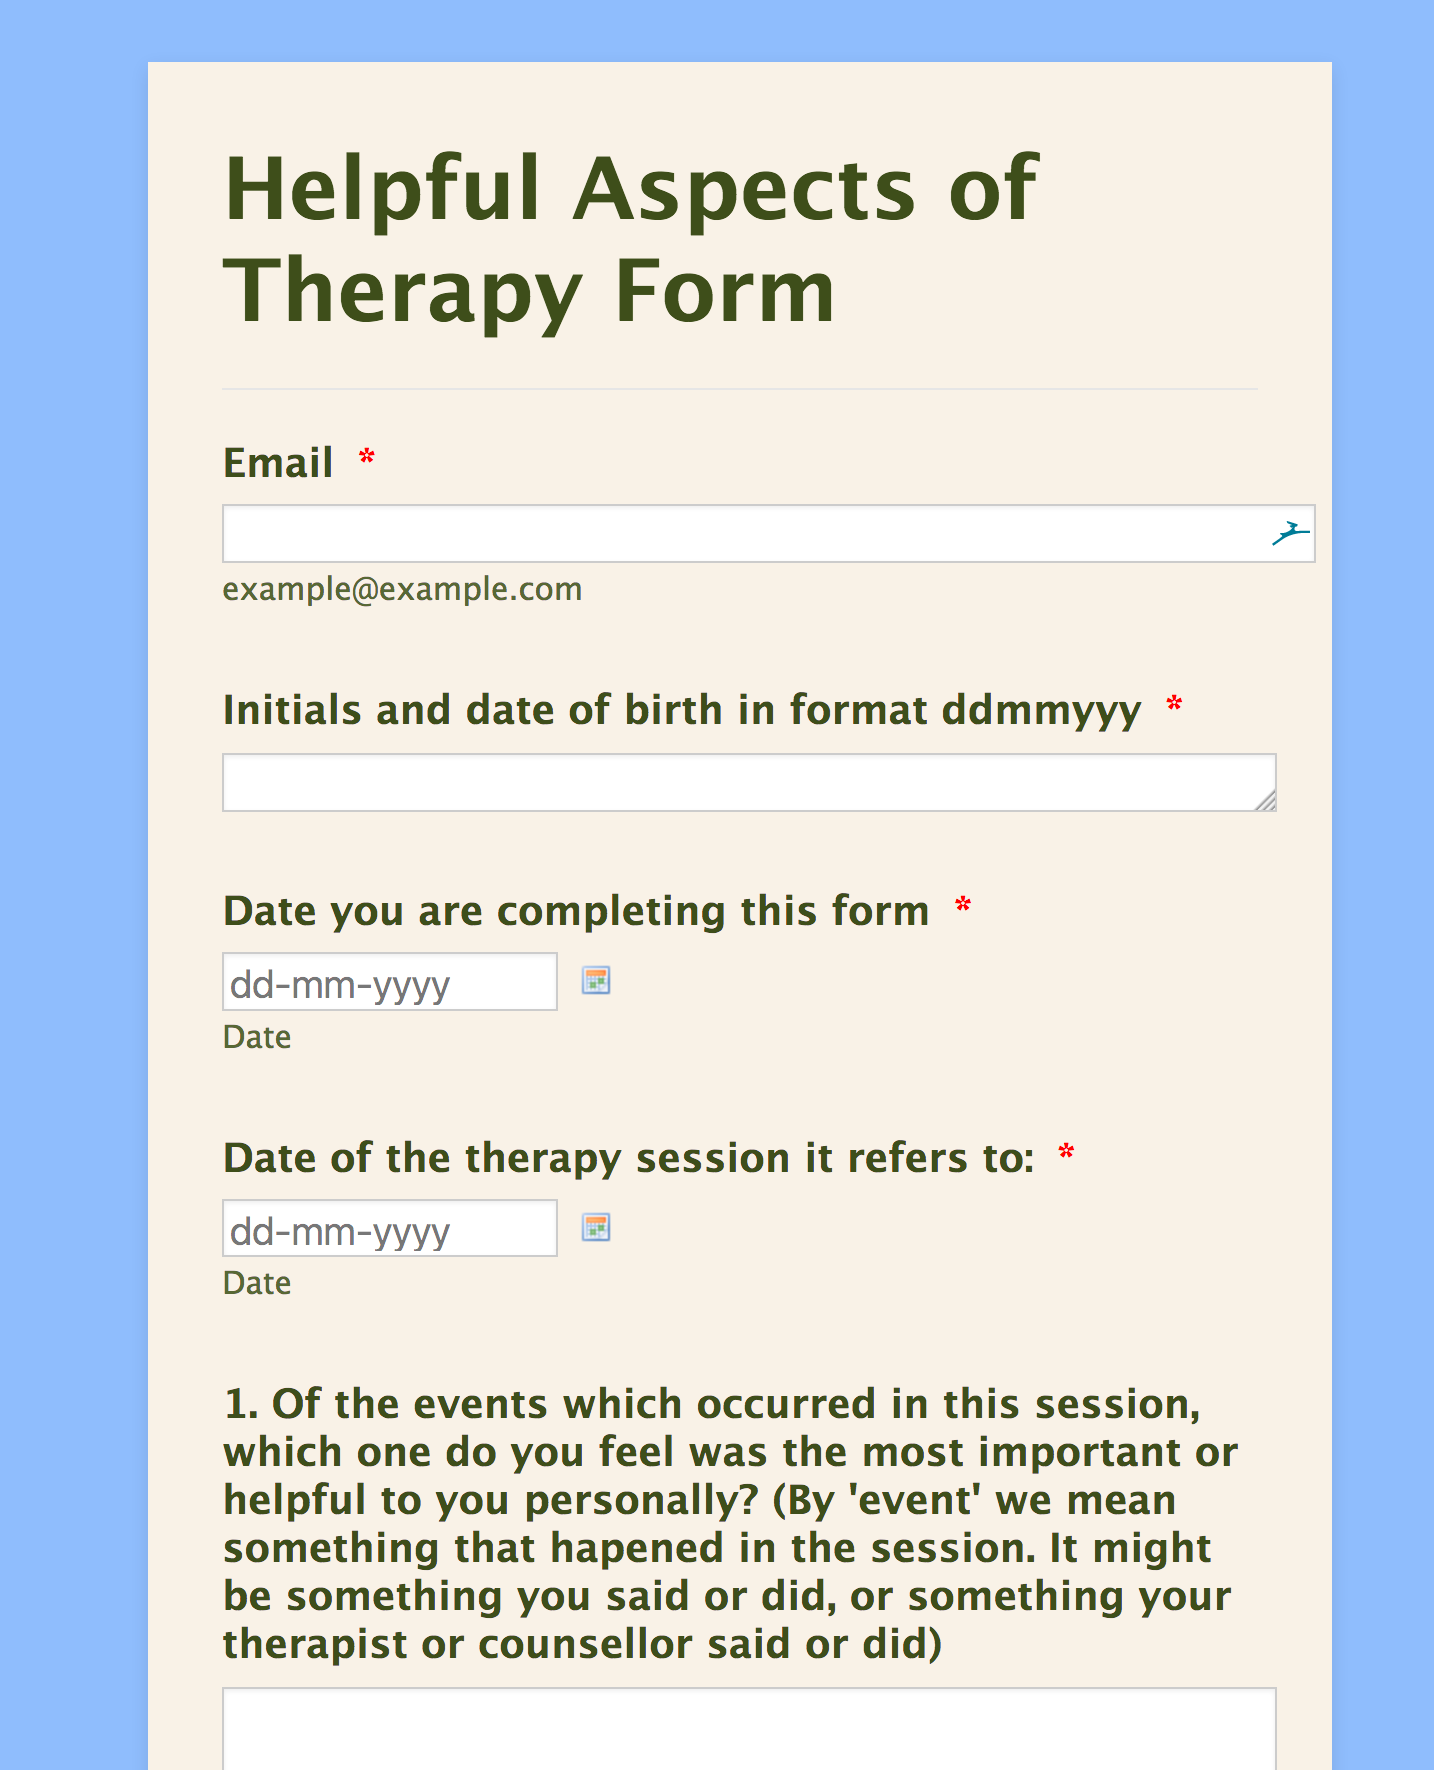 Helpful Aspects of Therapy Form